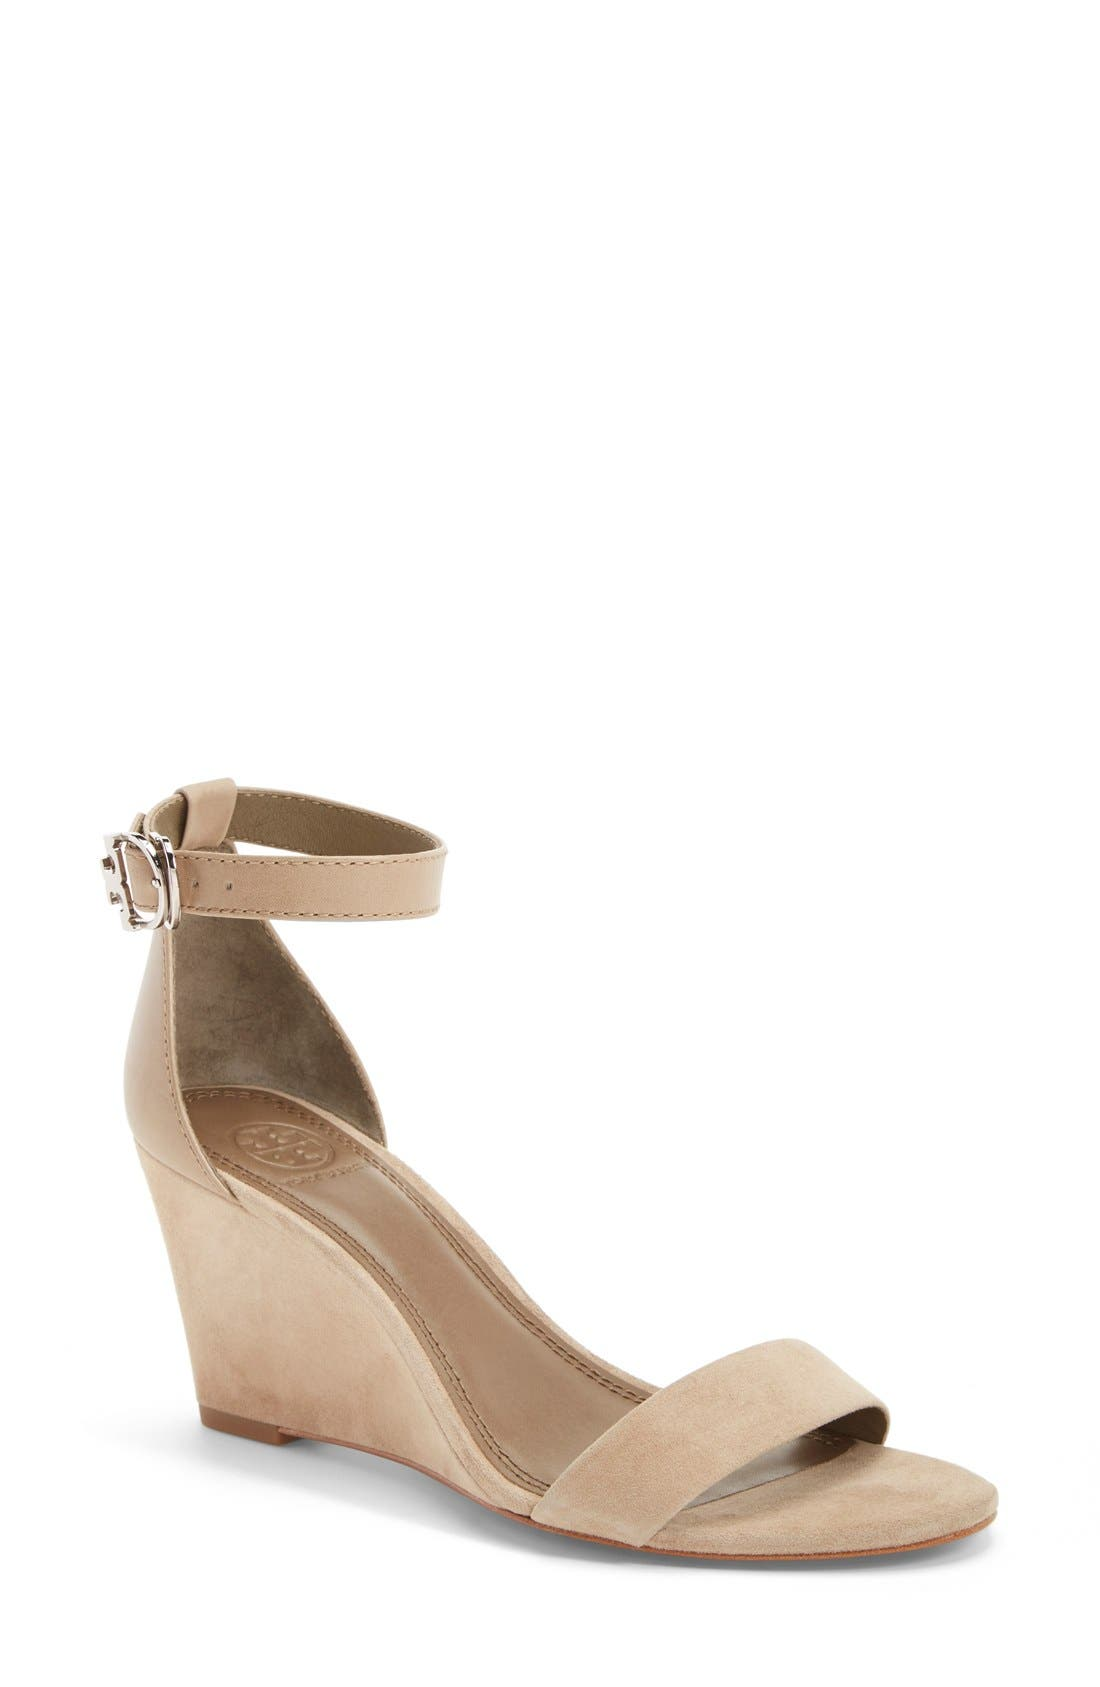 Main Image - Tory Burch 'Thames' Ankle Strap Wedge Sandal (Women)